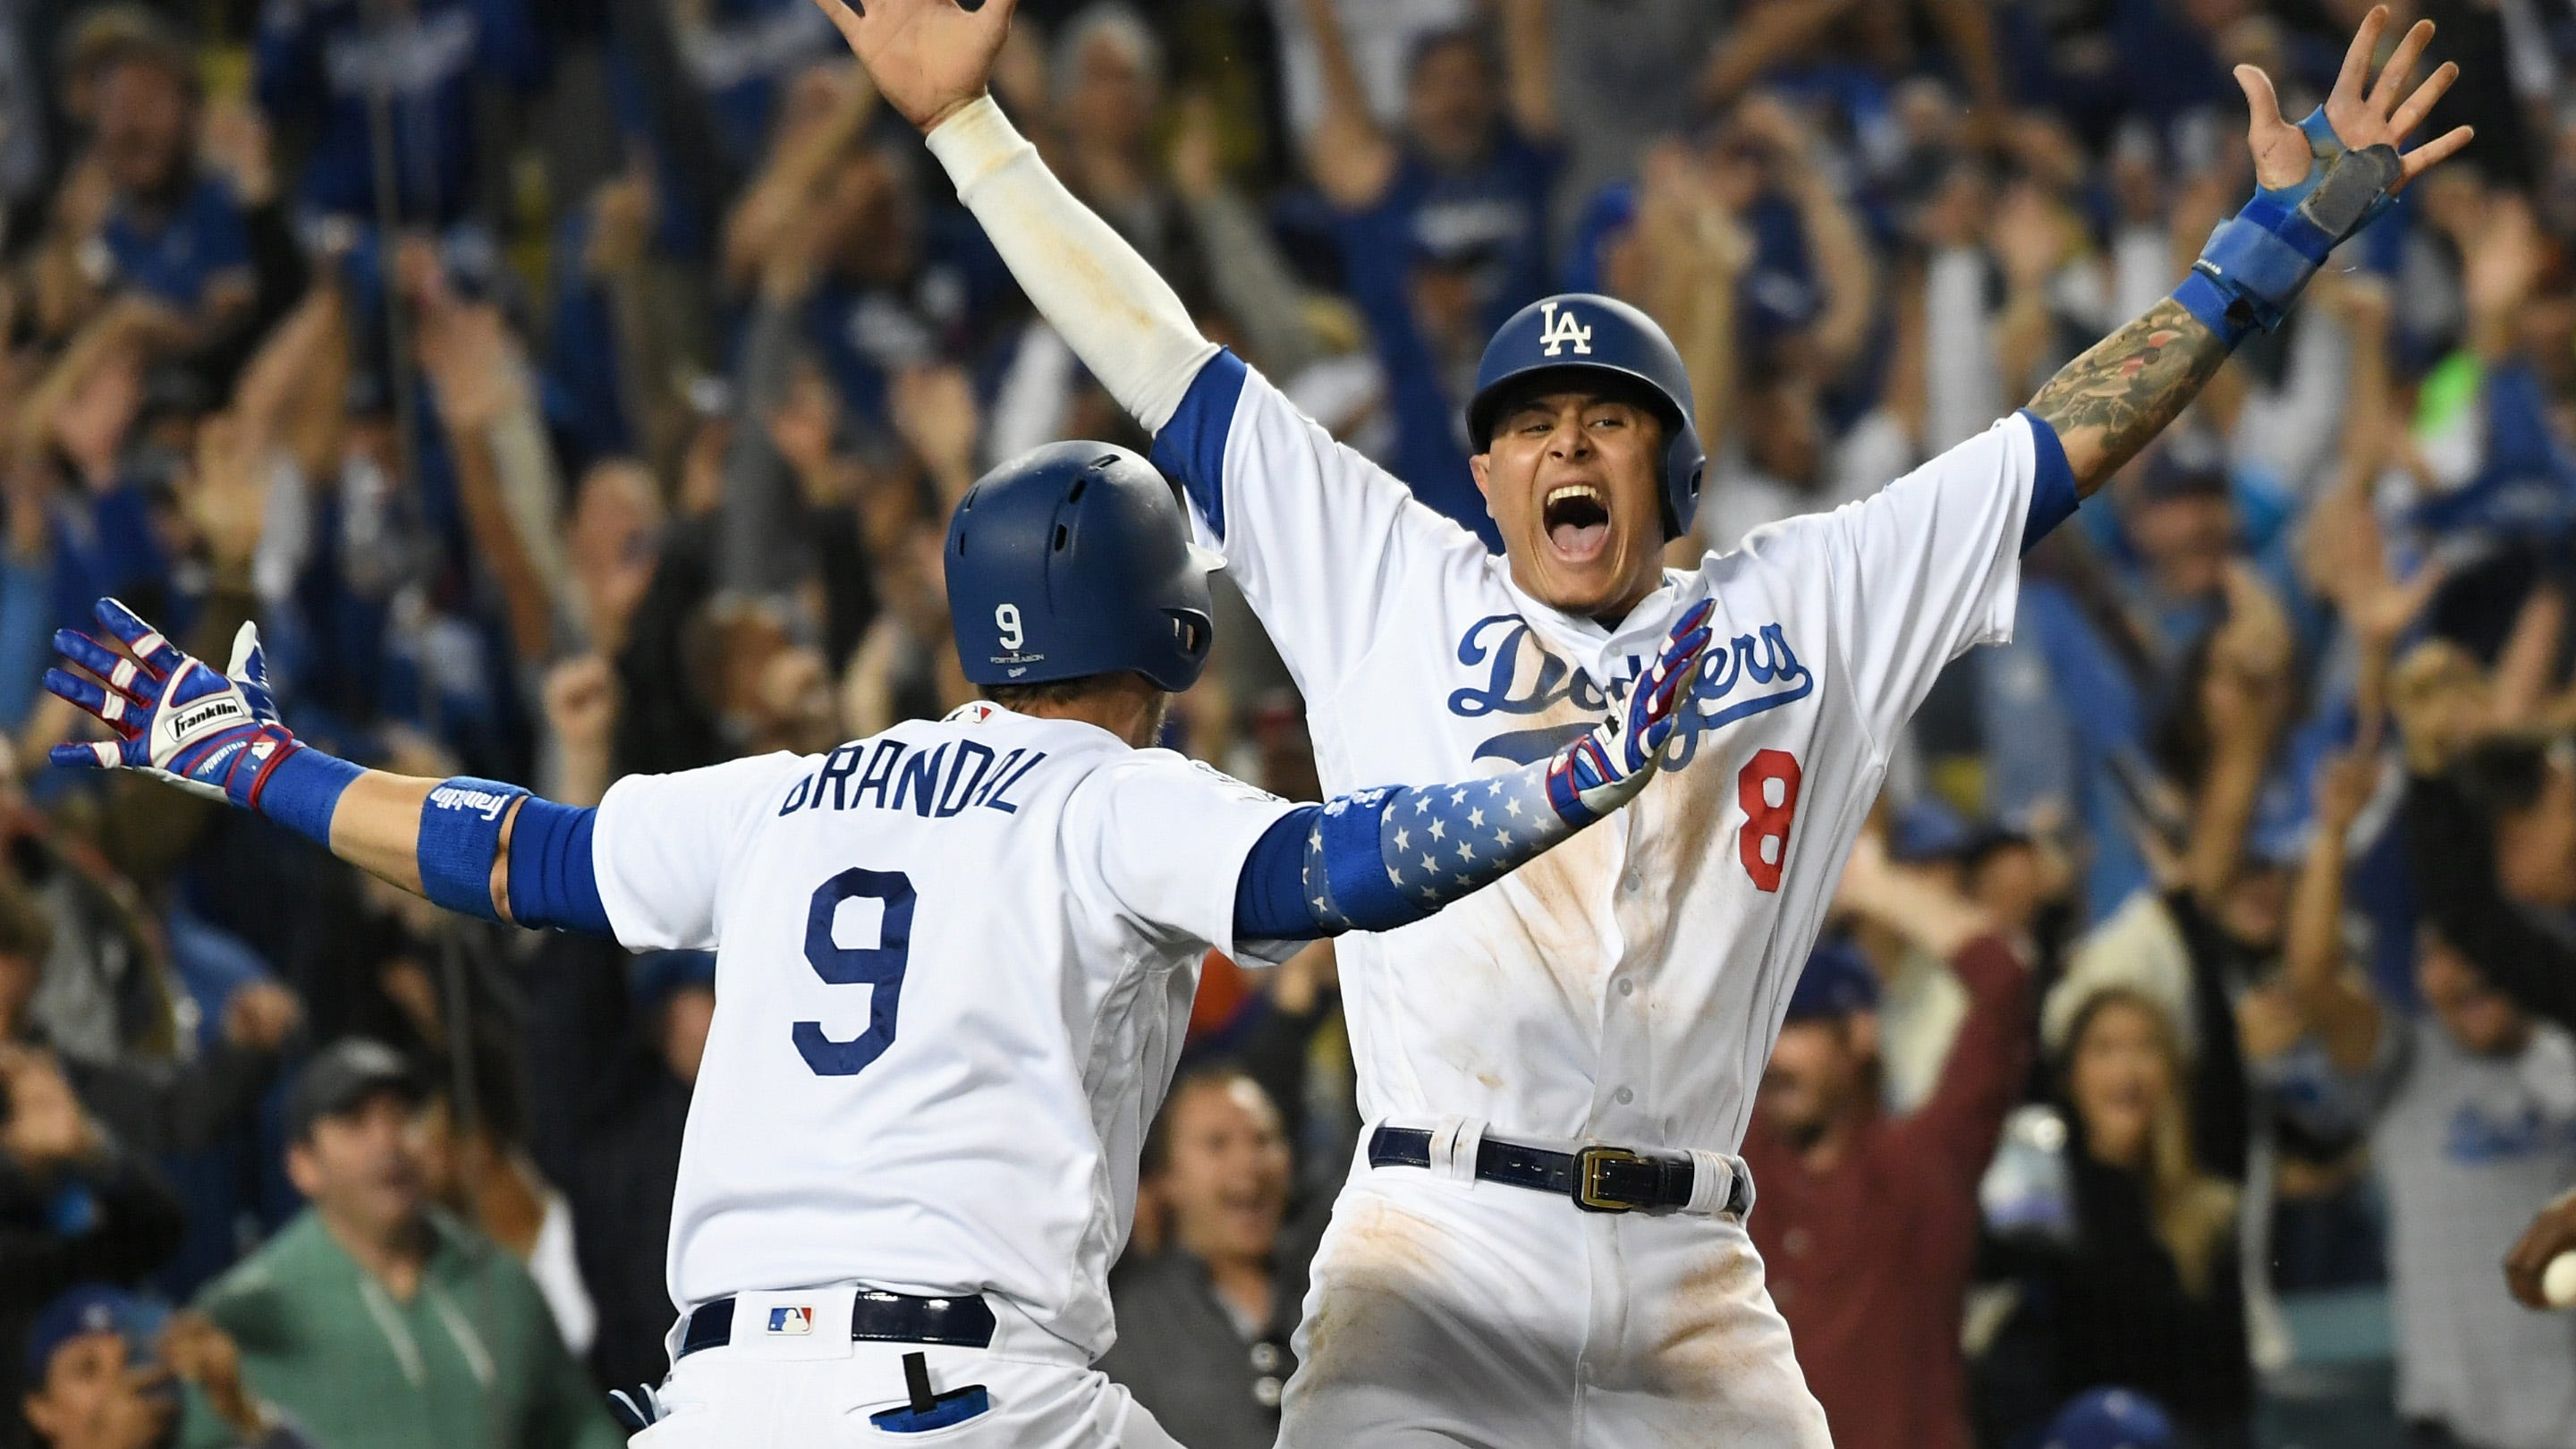 Dodgers shortstop Manny Machado celebrates with catcher Yasmani Grandal after scoring on an RBI single in the 13th inning.